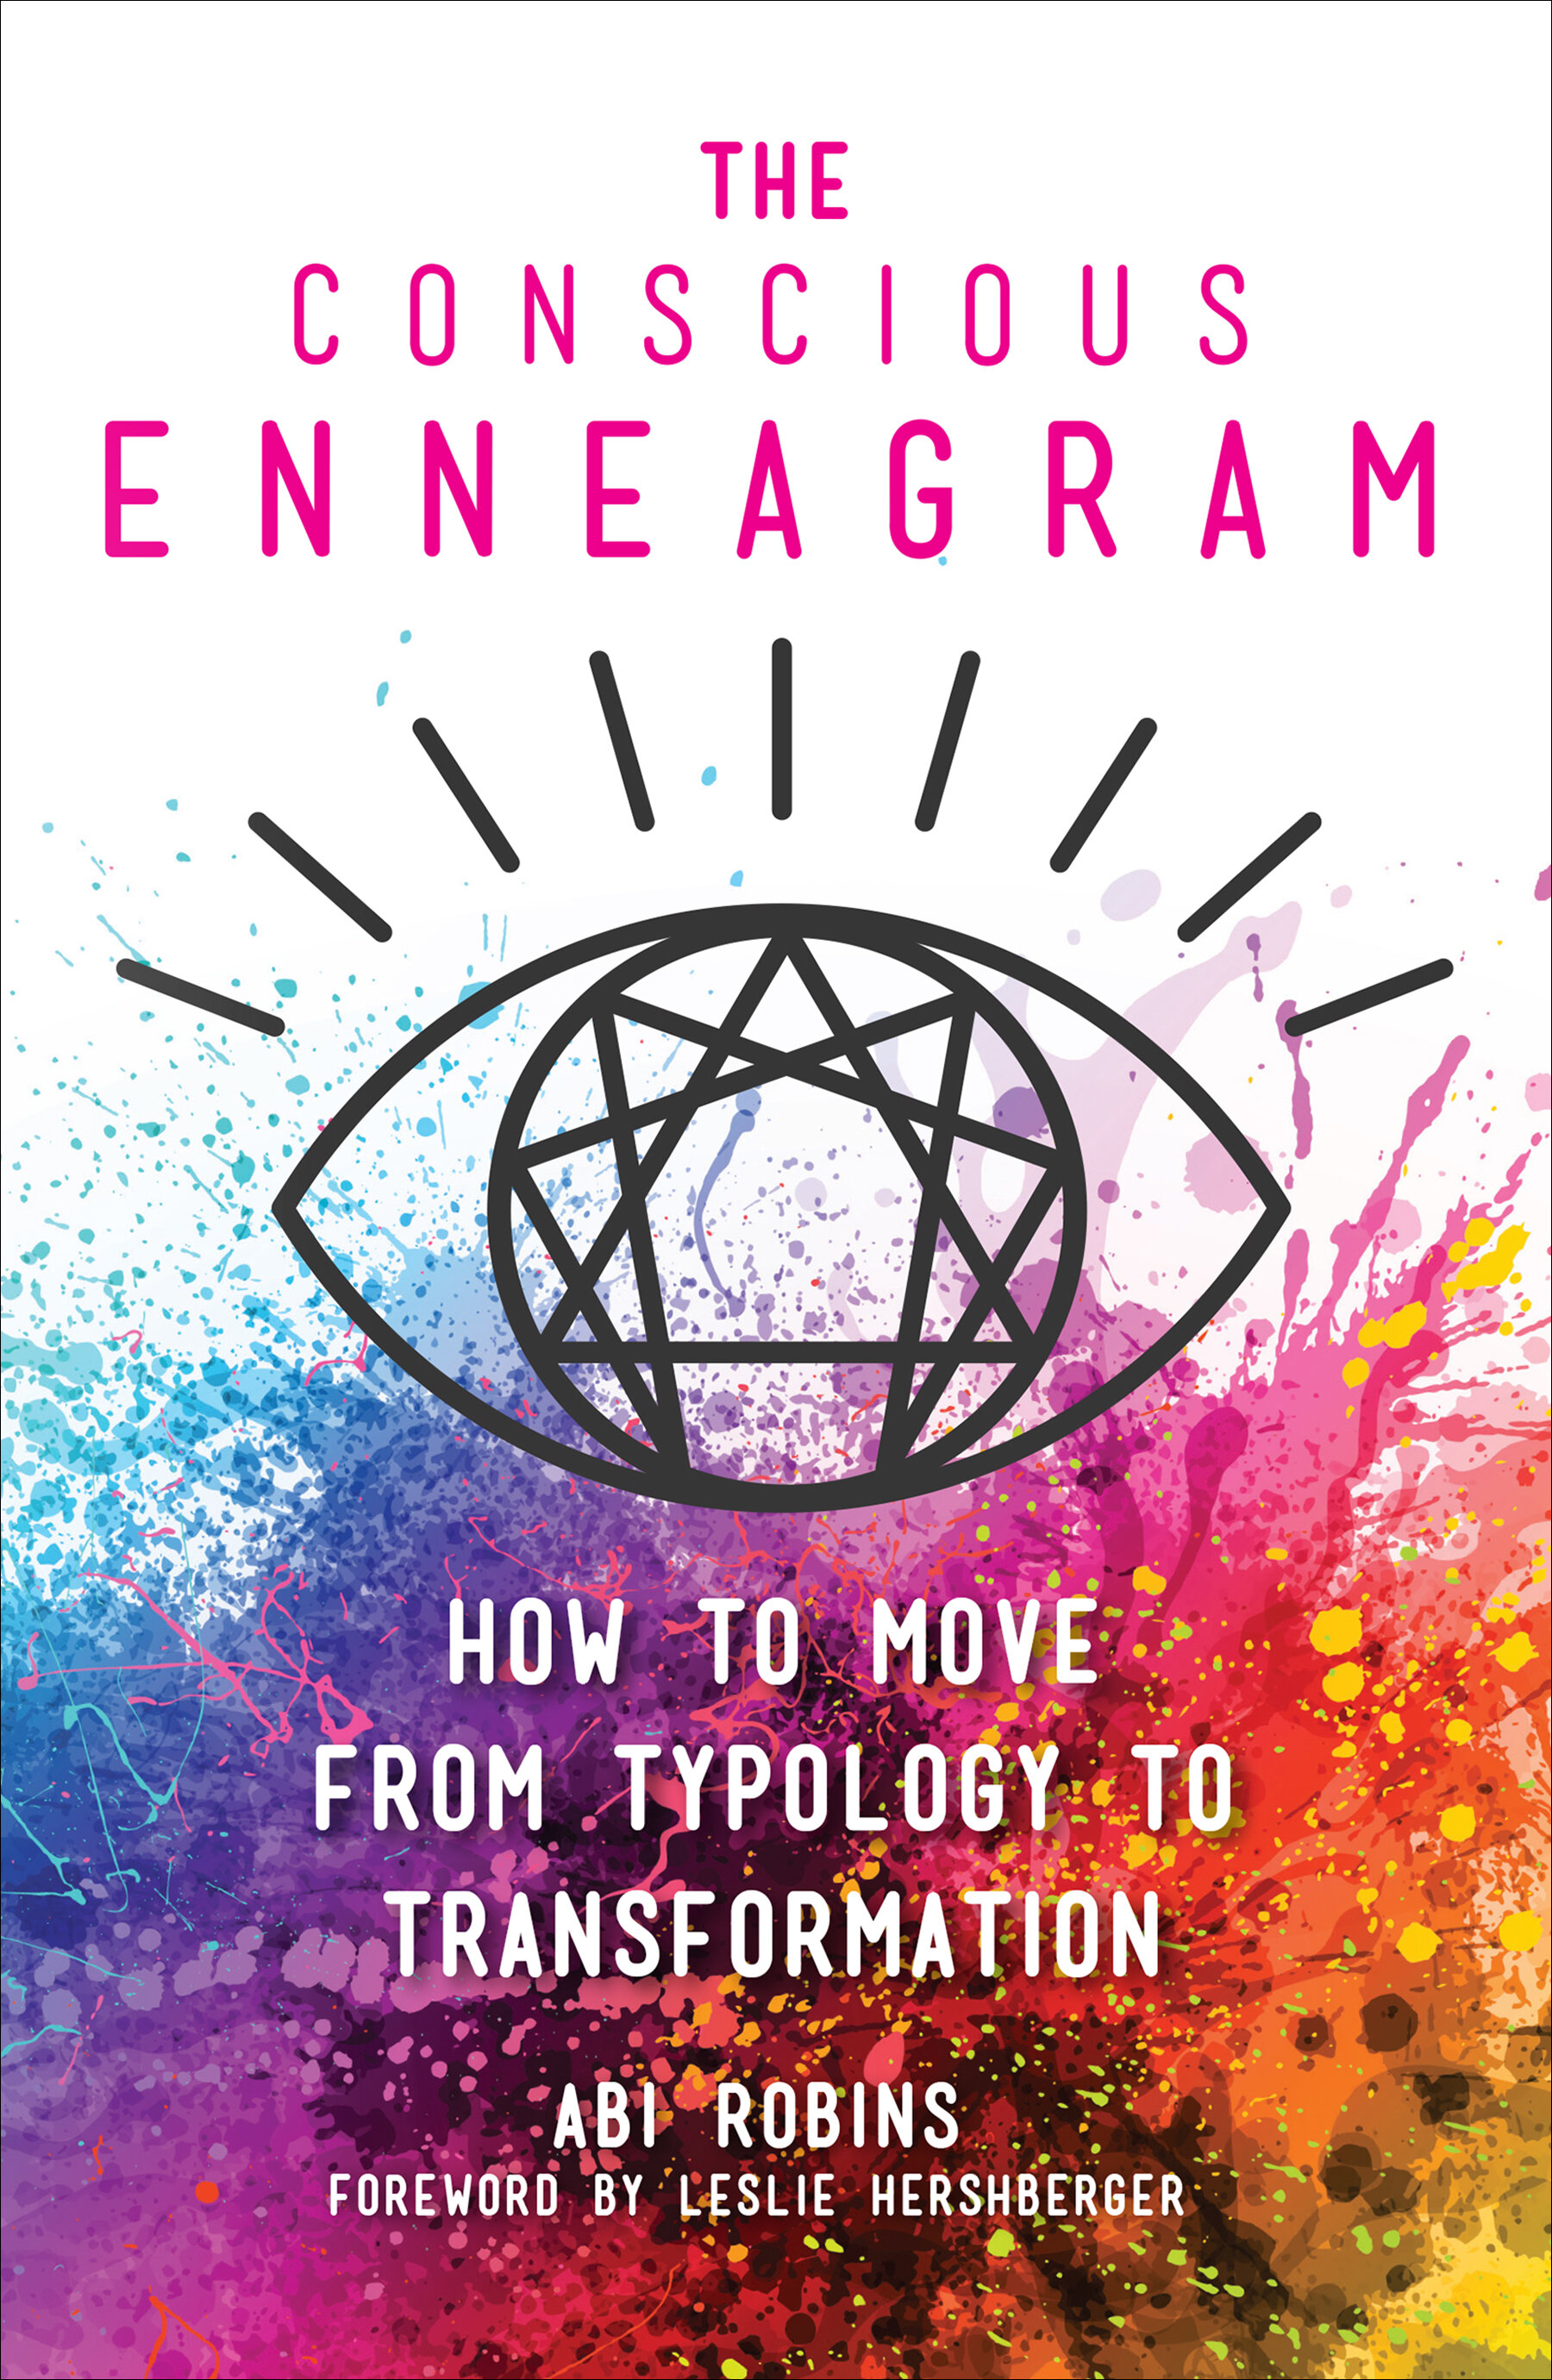 The Conscious Enneagram: How to Move from Typology to Transformation